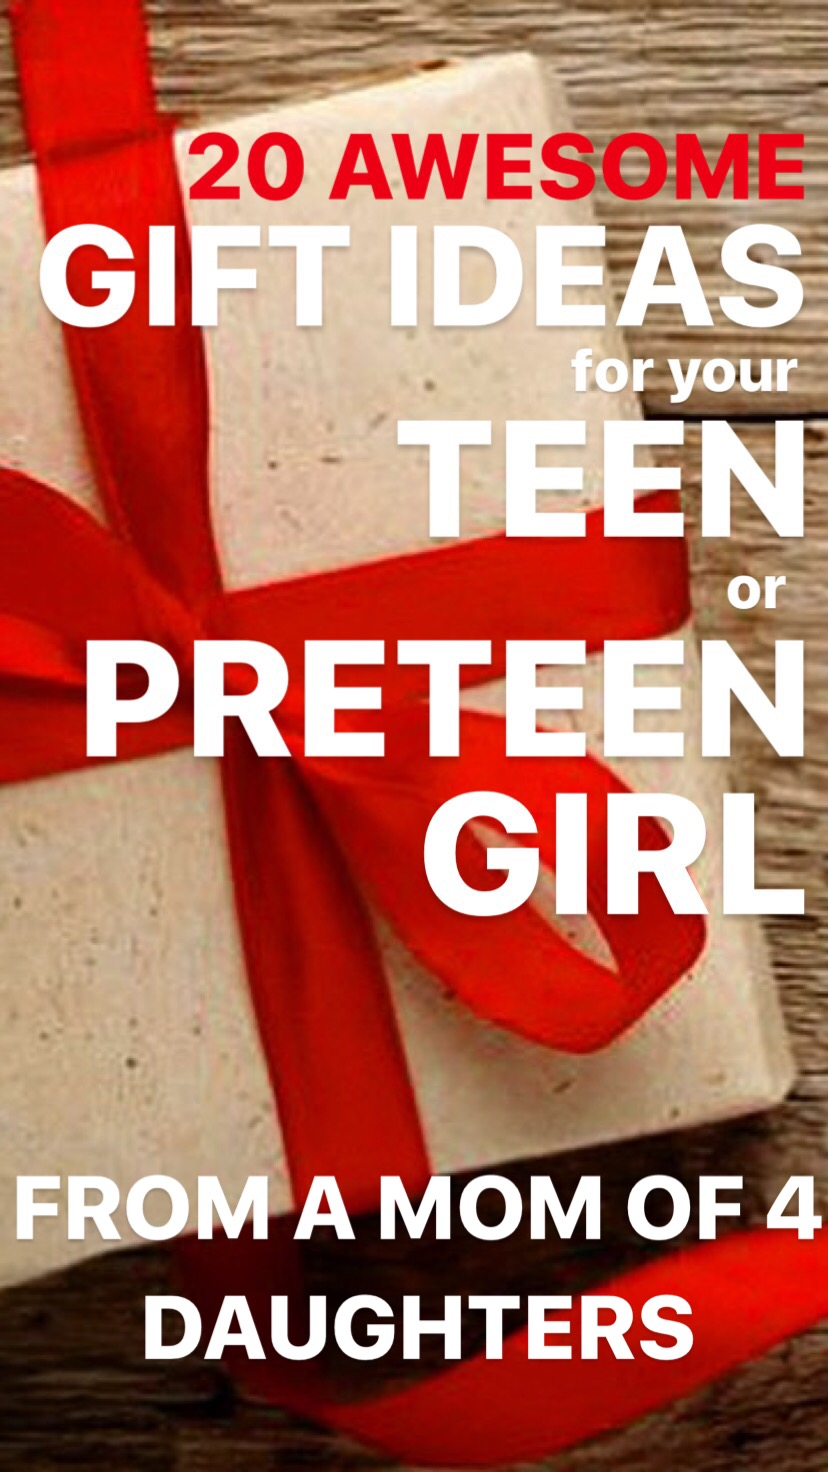 20 Awesome Gift Ideas For Your Teen Or Preteen Girl From The Mom Of Four Daughters